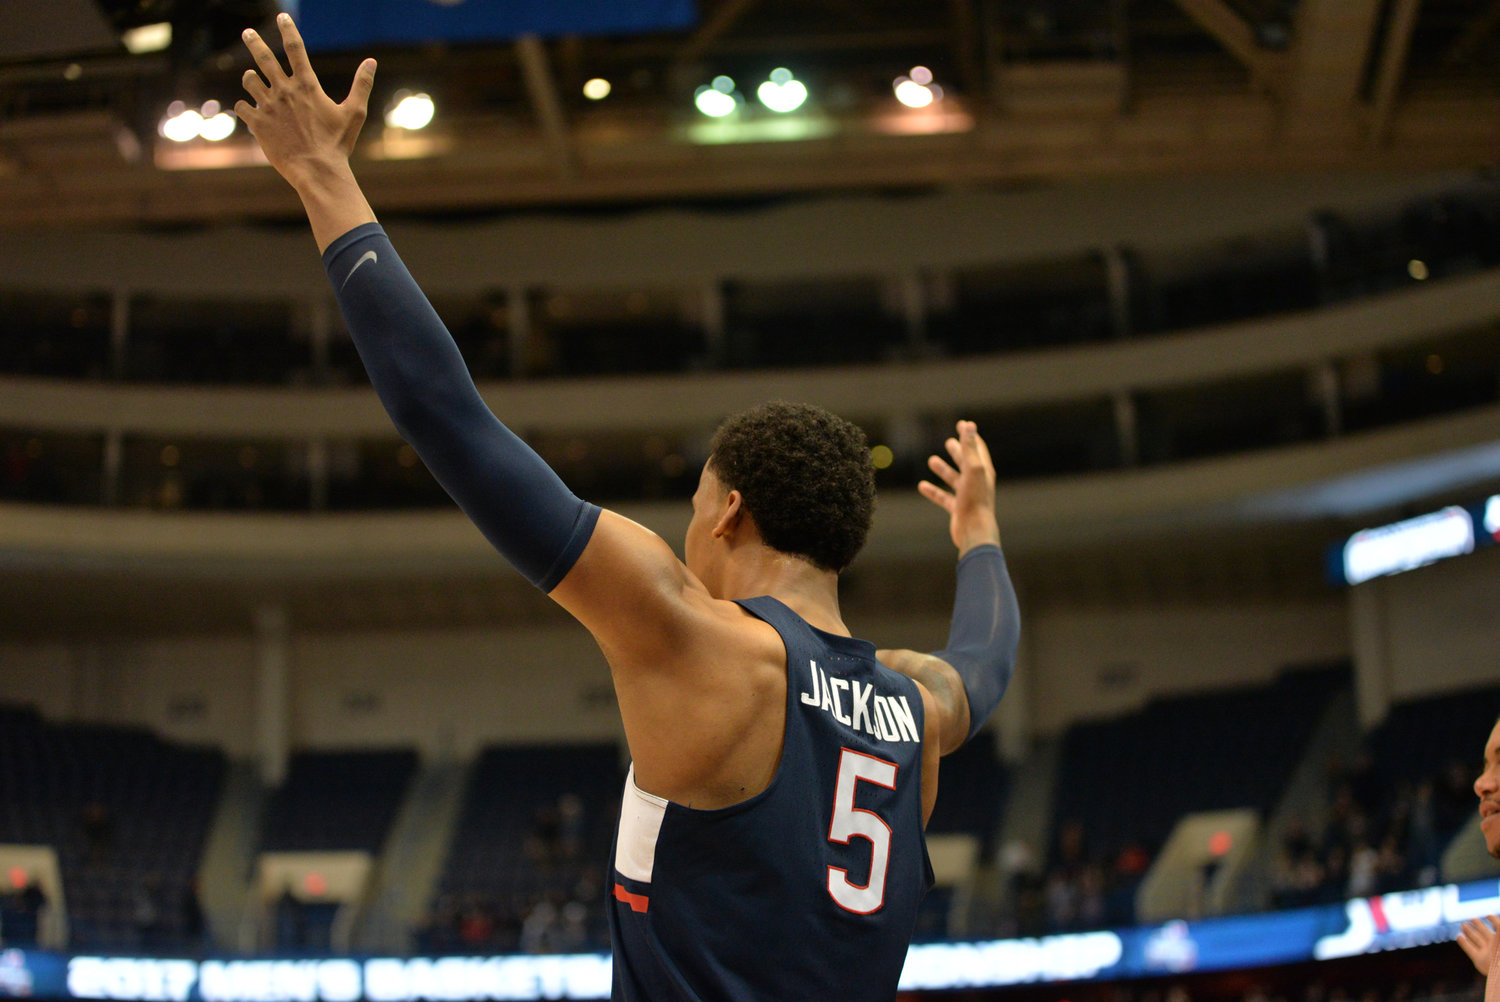 Vance Jackson waves his arms to pump up the hometown crowd in UConn's 74-65 win over Houston in the second round of the American Athletic Conference tournament on Friday, March 10, 2017 at the XL Center in Hartford. (Amar Batra/The Daily Campus)